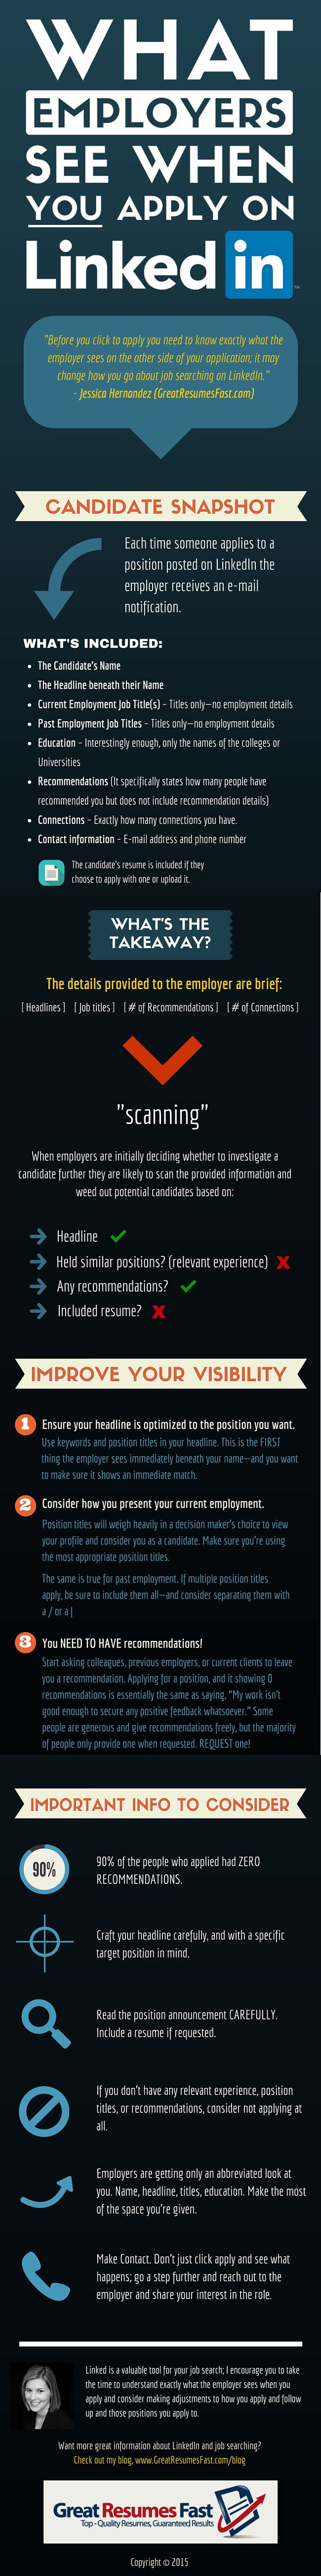 what employers see when you apply on linkedin great resumes fast jessica holbrook hernandez